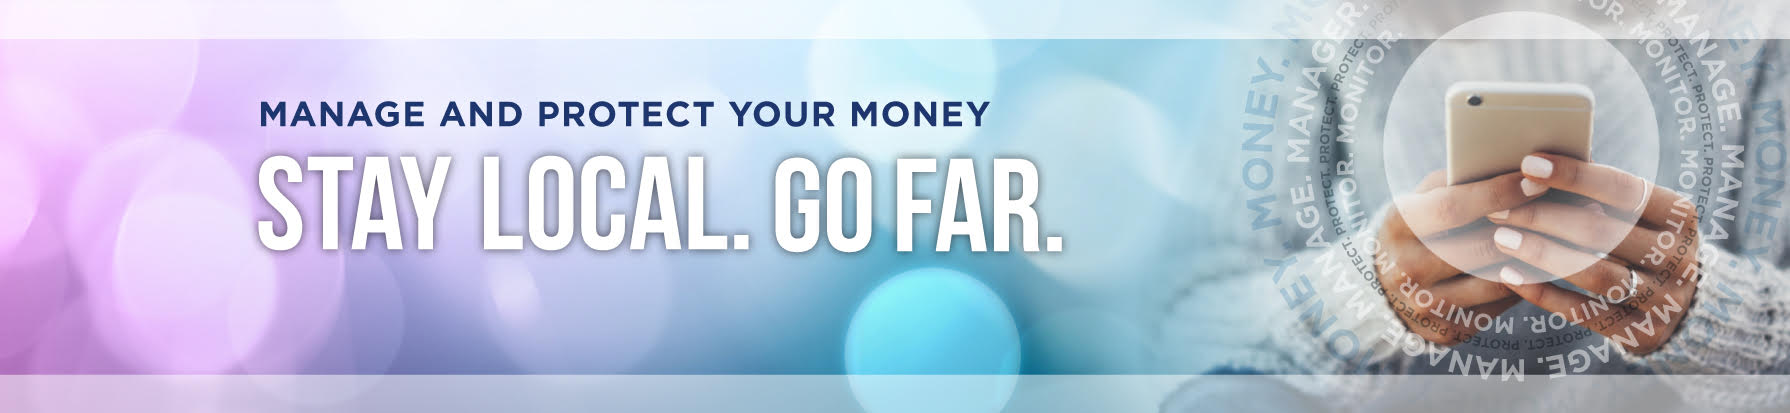 Manage and protect your money. Stay Local. Go Far.